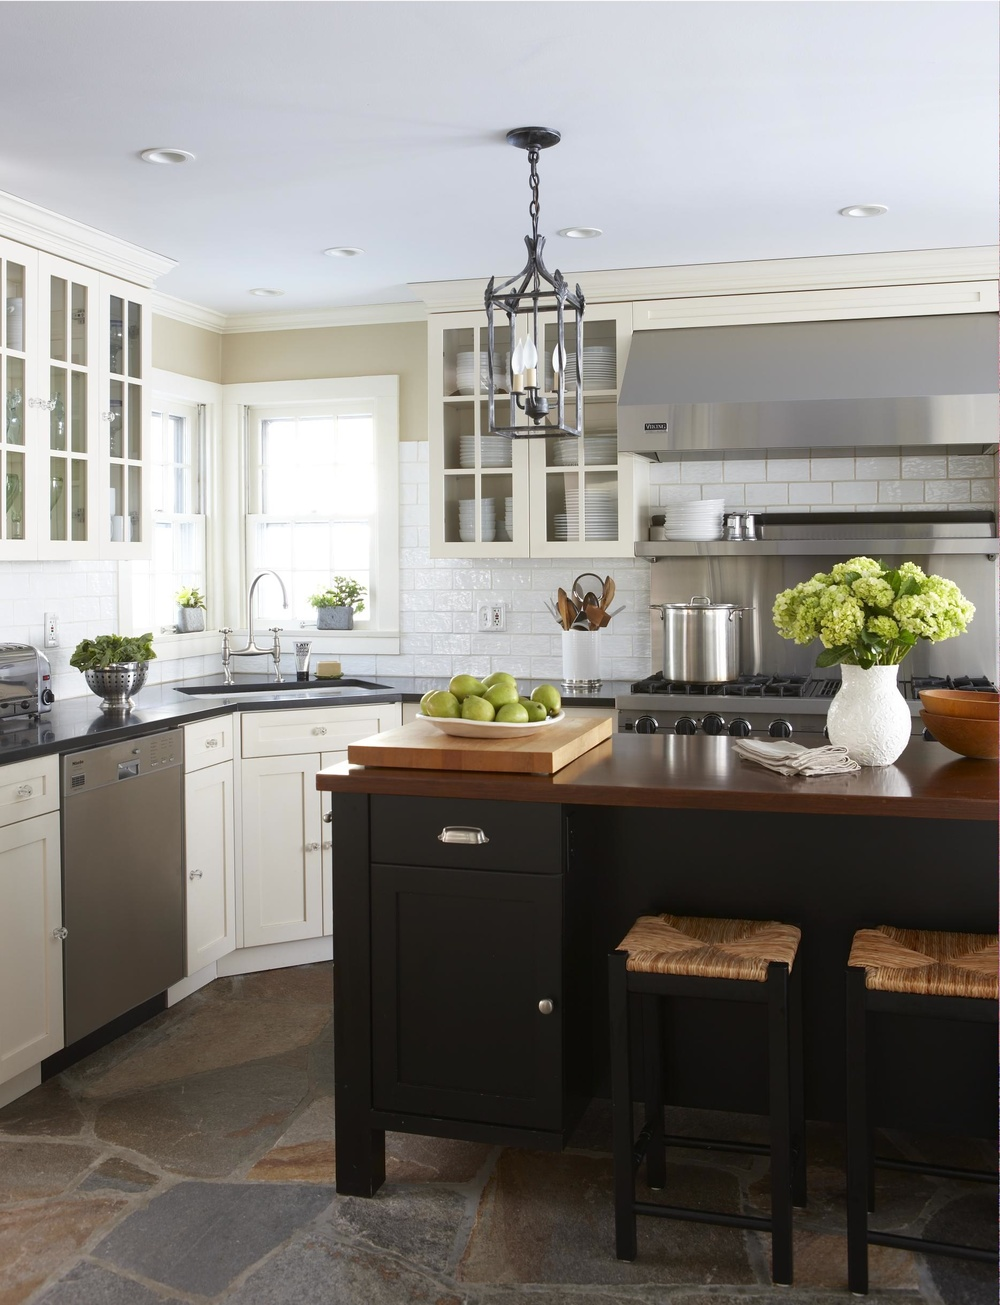 HUDSON VALLEY FARMHOUSE - Cold Spring, NY - Kitchen